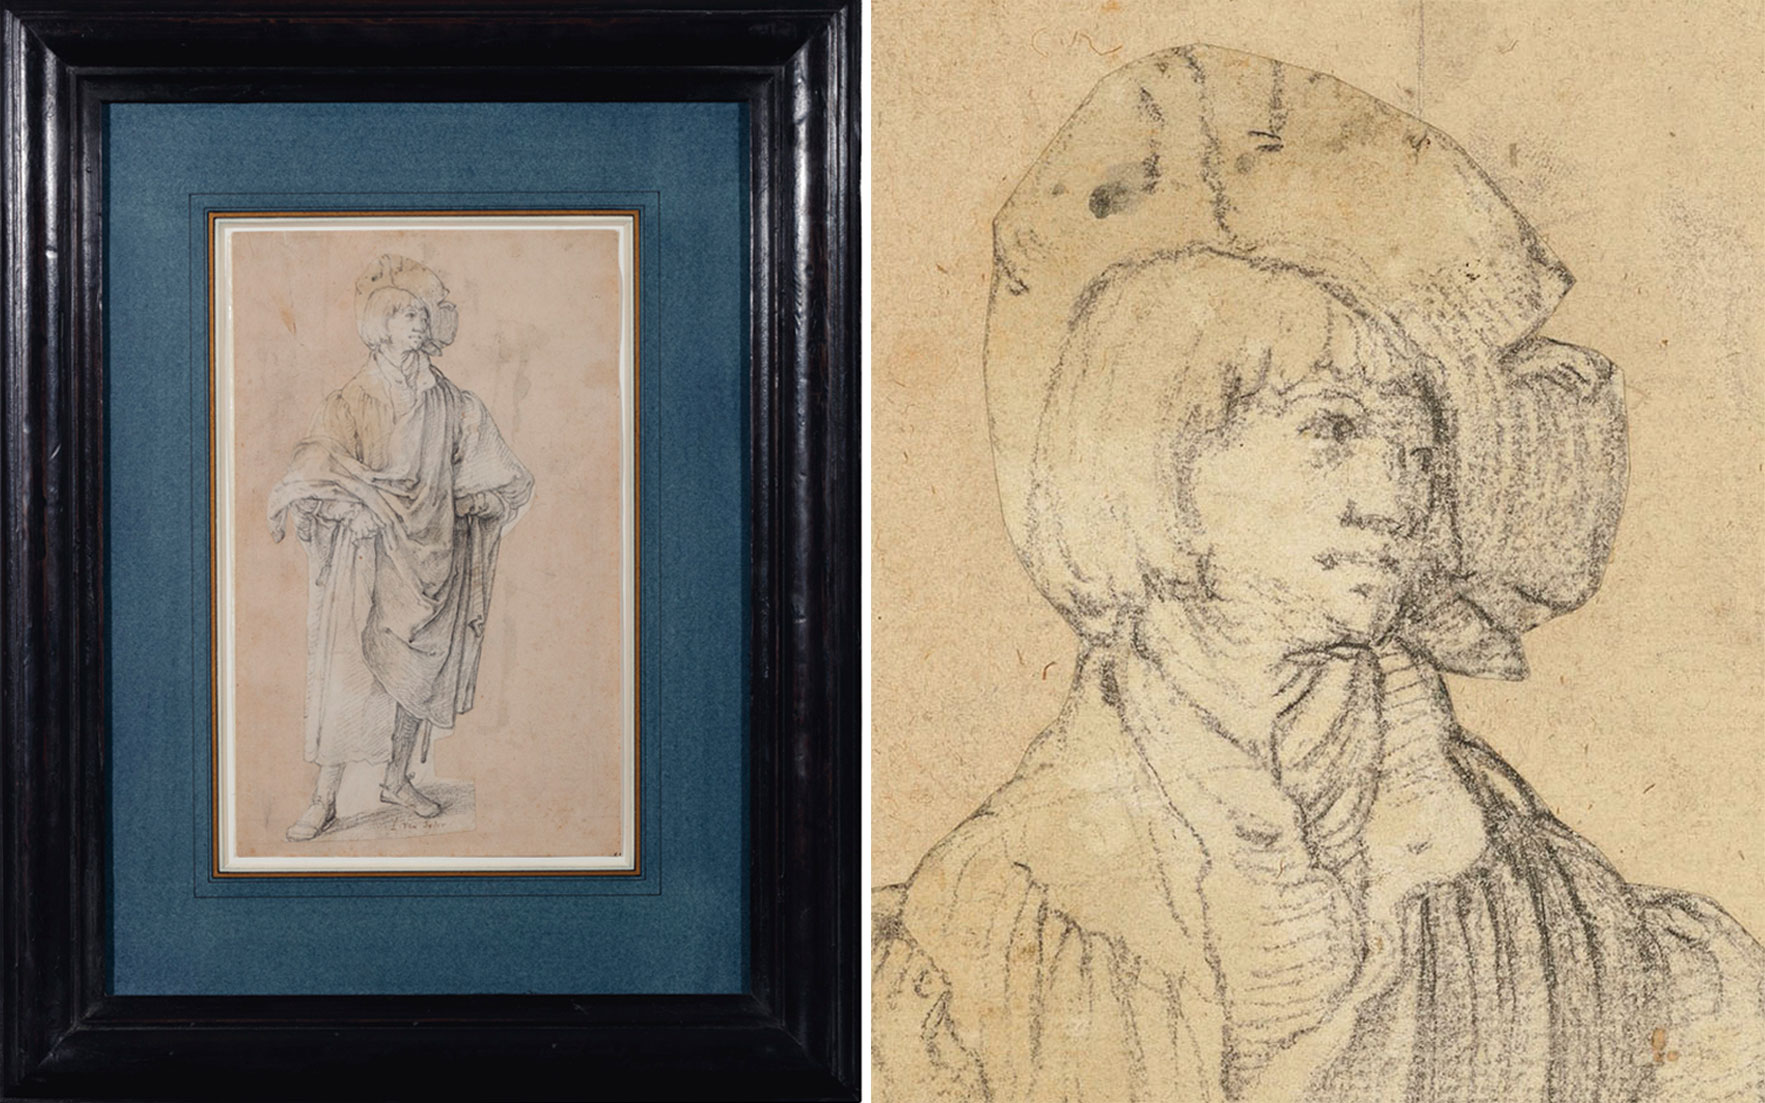 Lucas van Leyden (Leiden 14891494-1533), A Young Man Standing. Offered in Old MastersNew Scholars Works of Art Sold to Benefit Rugby School on 4 December 2018 at Christie's in London